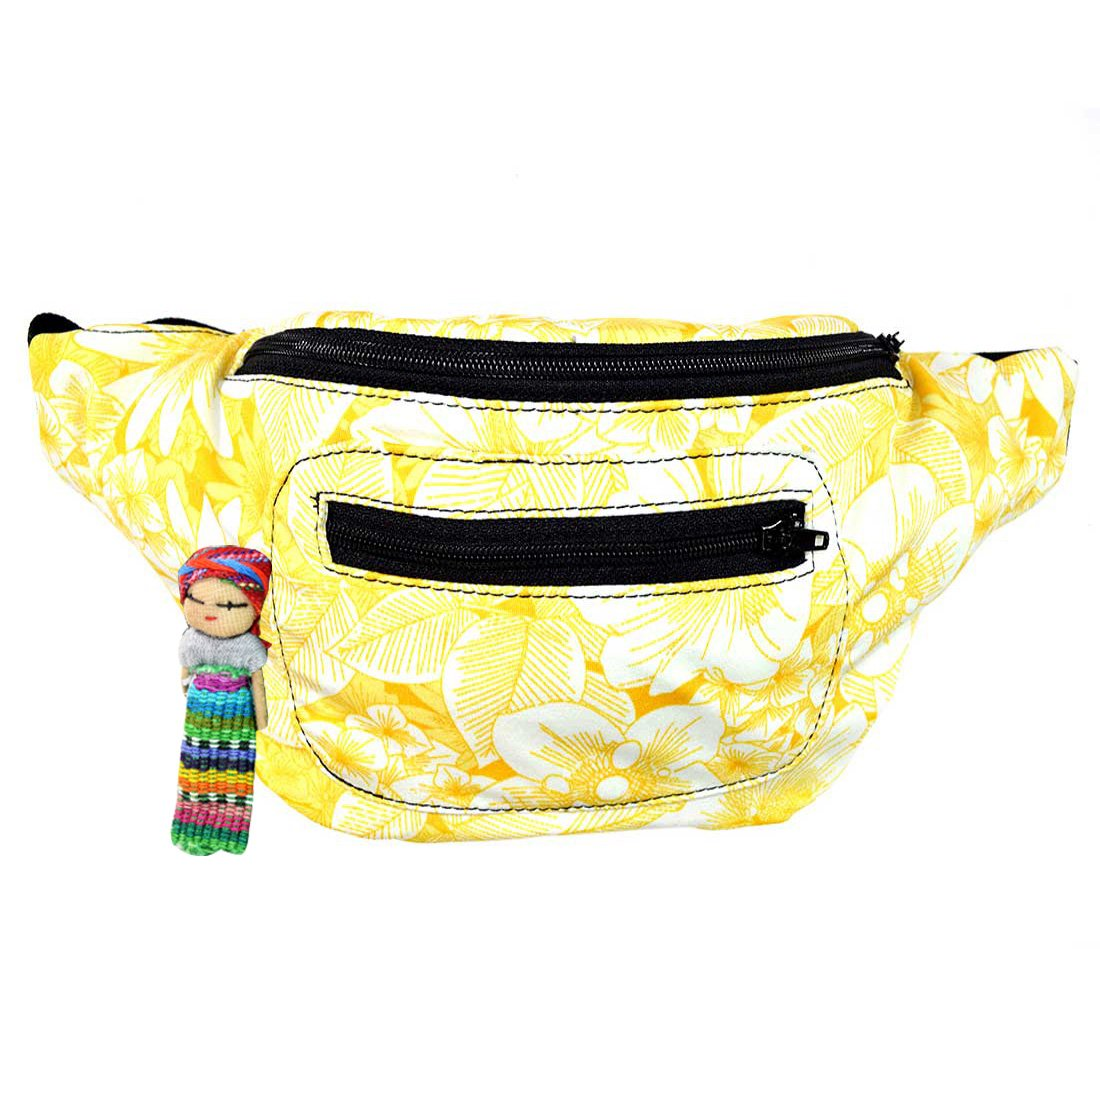 Floral Fanny Pack, Stylish Party Boho Chic Handmade with Hidden Pocket (Summer of '89)